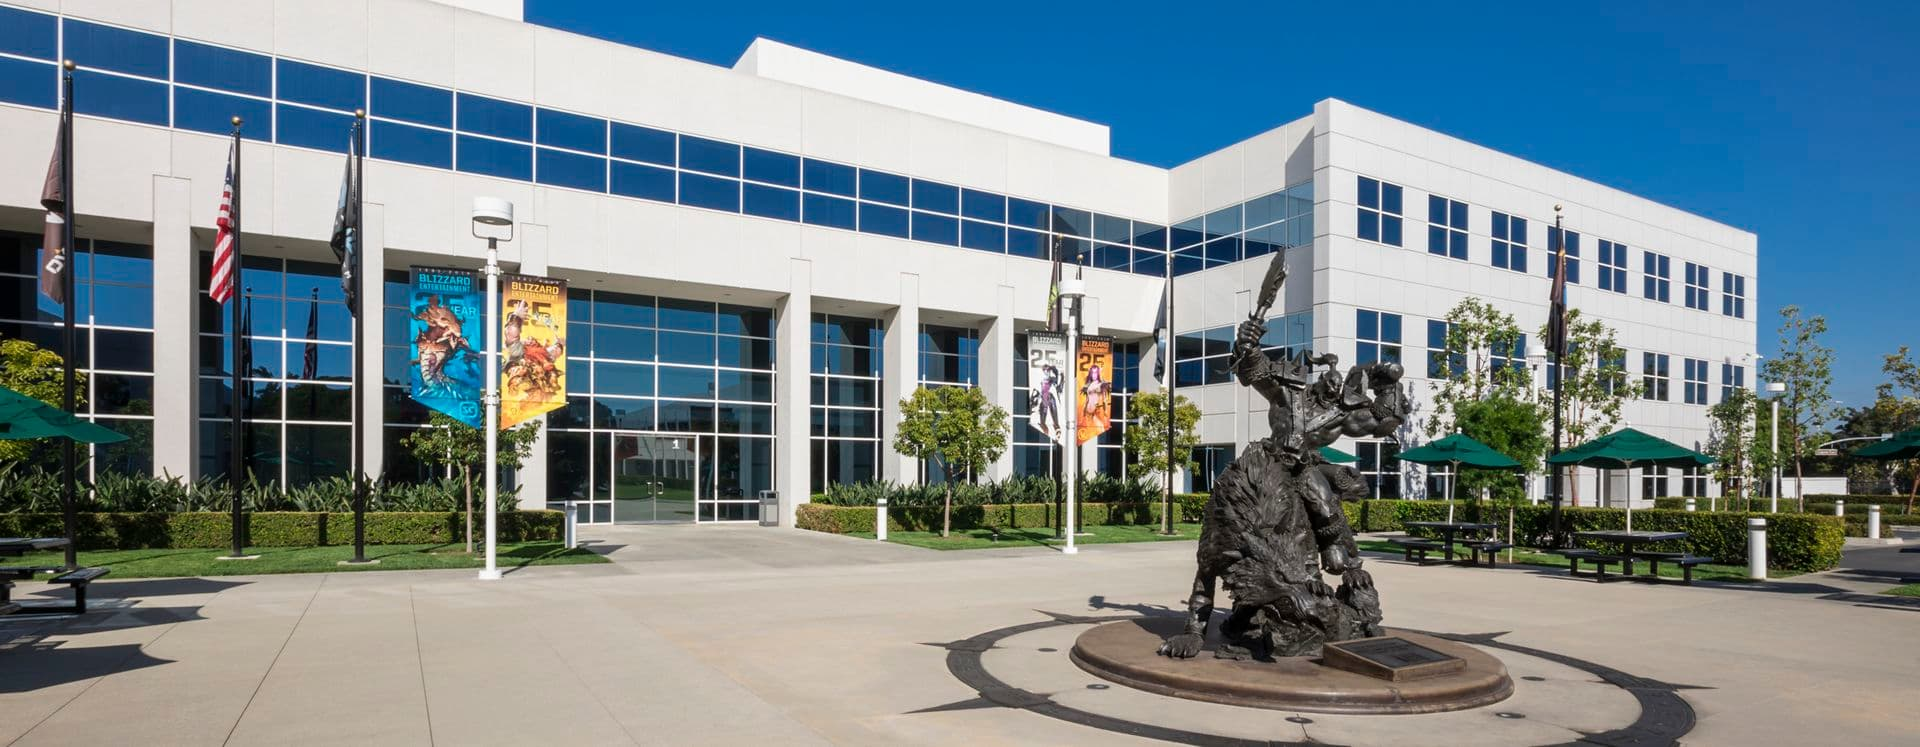 Building hero image of 16215 Alton Parkway, Blizzard Entertainment, Irvine, Ca